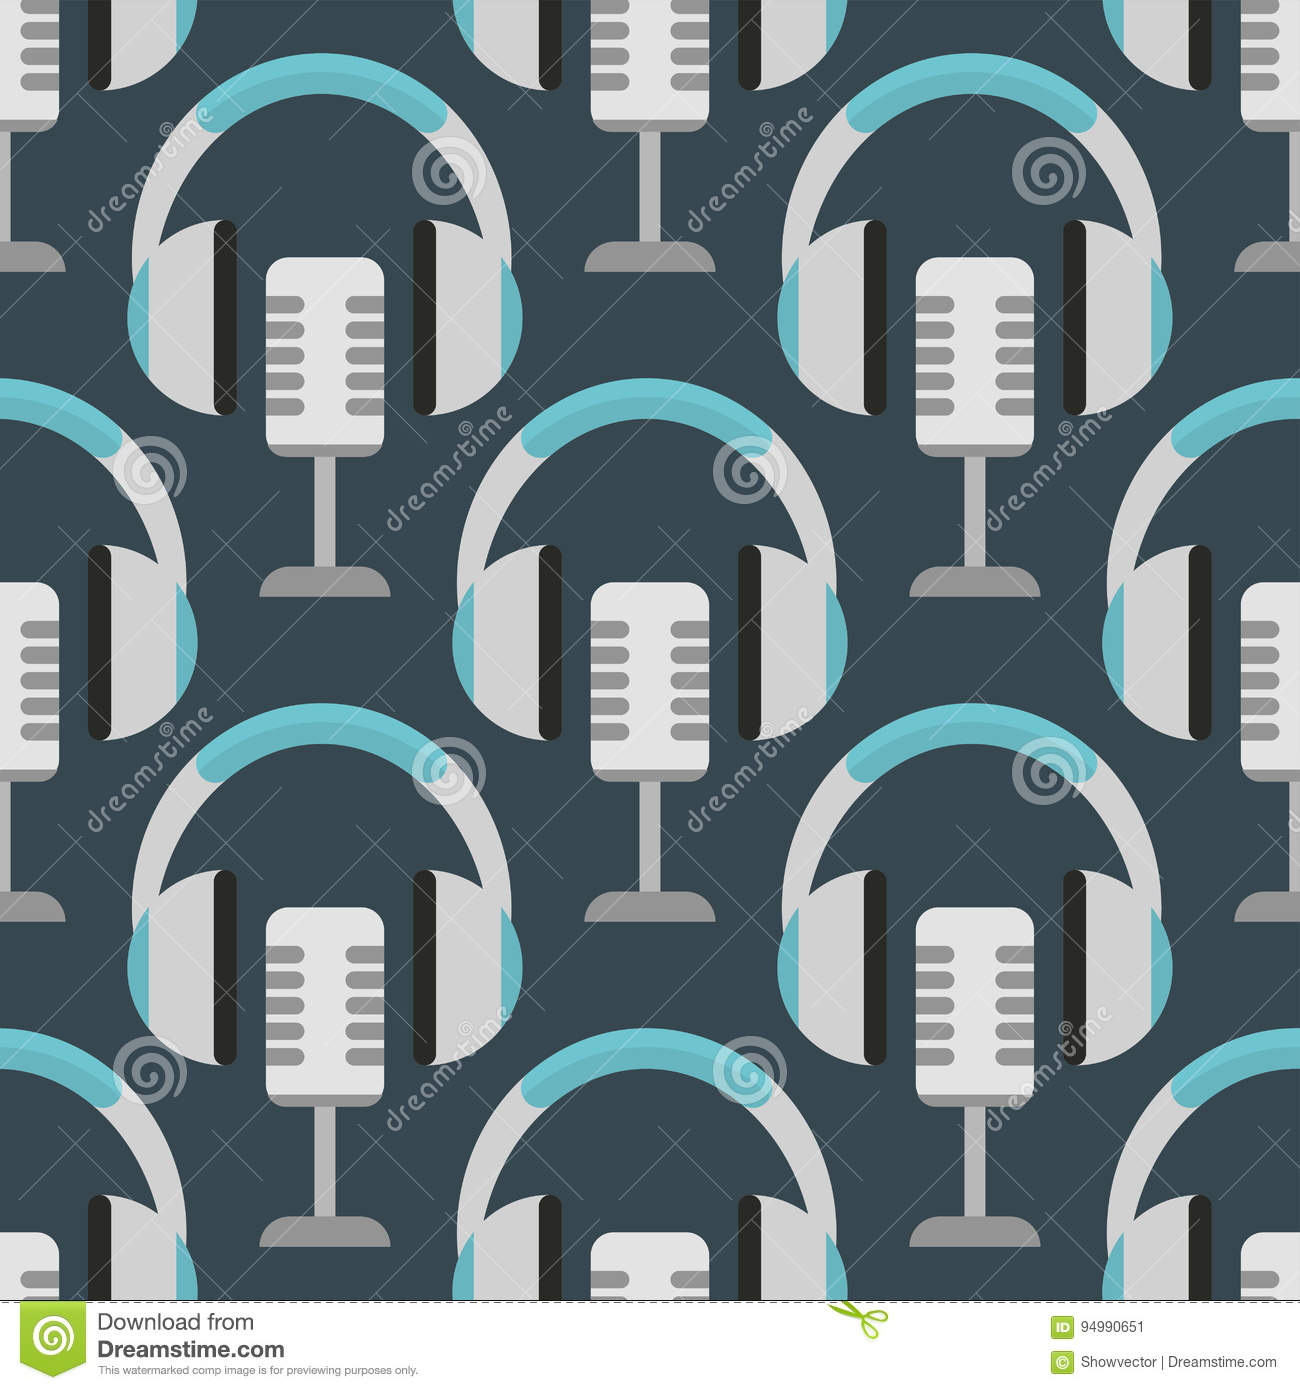 Download Vector Headphones Background Hip Hop Seamless Pattern Musician Expressive Rap Music Instrument Stock